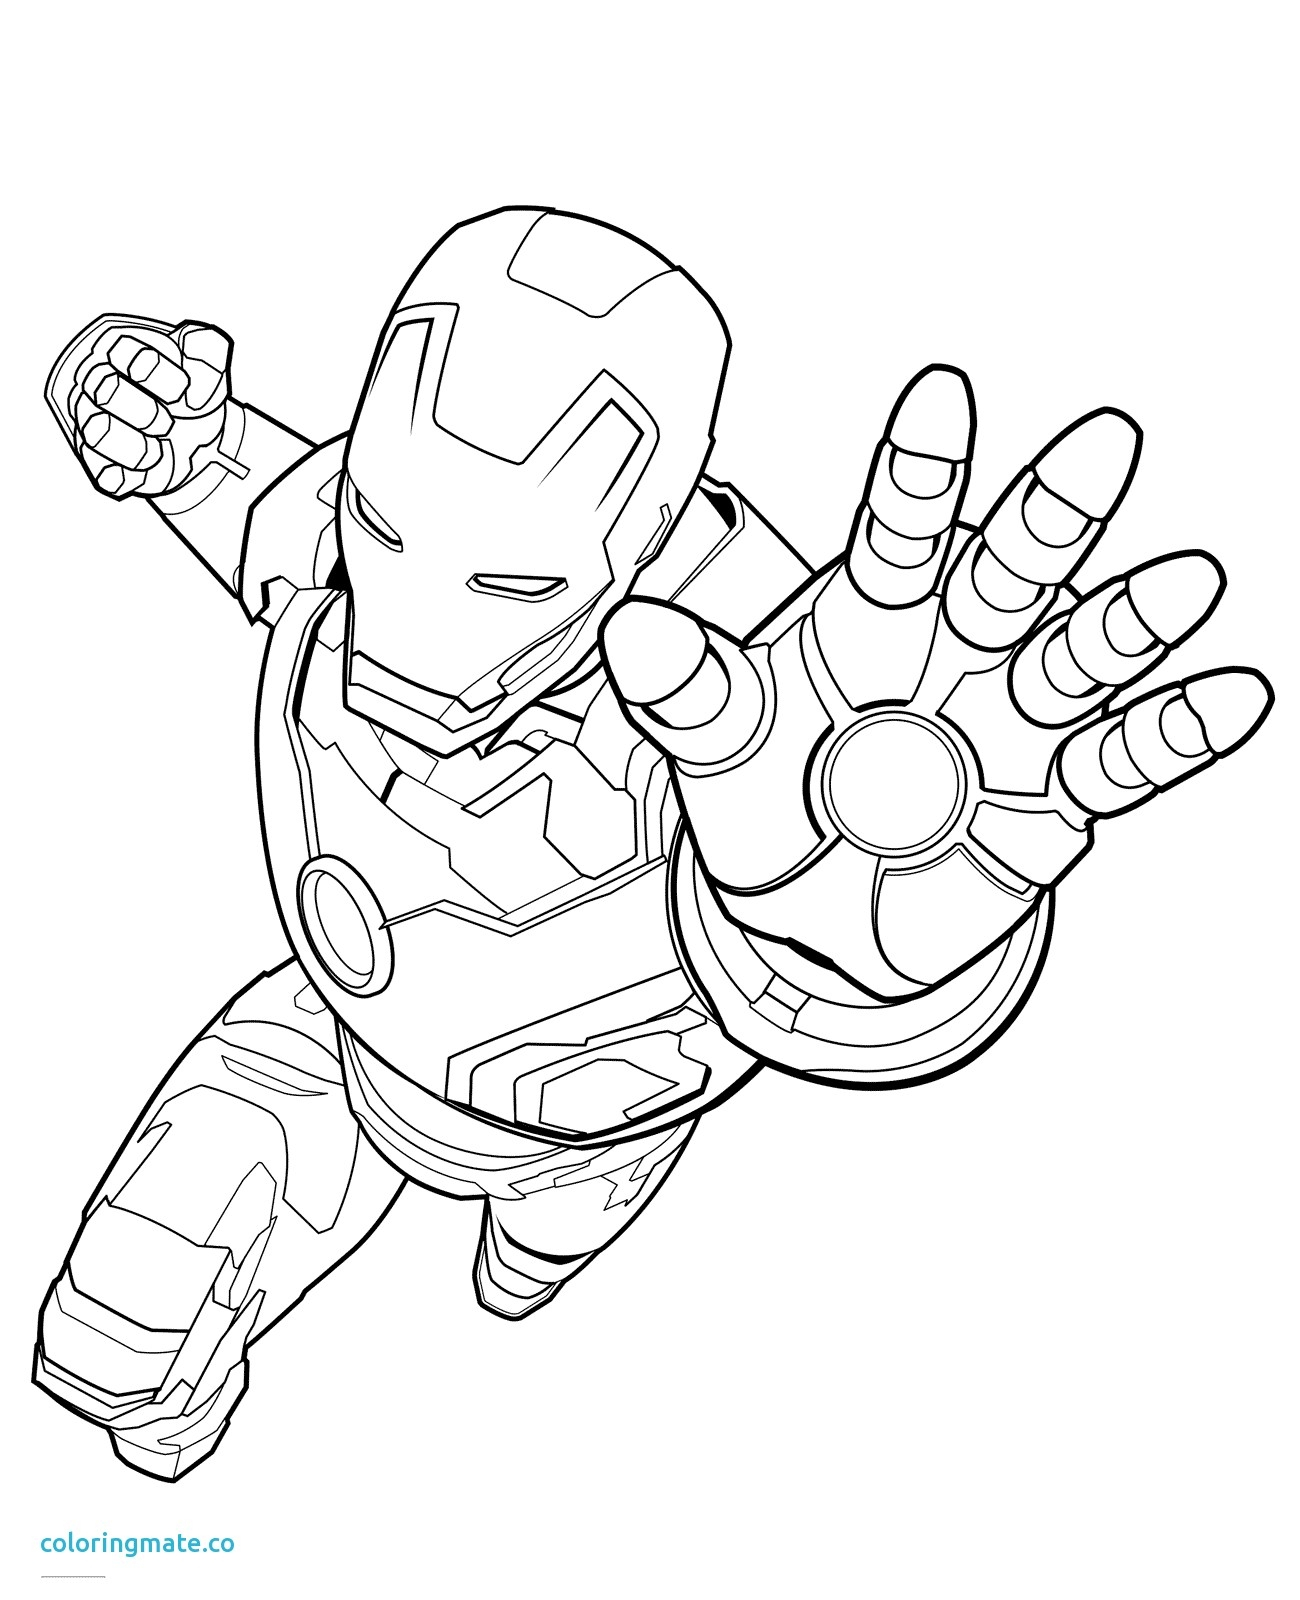 Printable Ironman Coloring Pages Coloring Free Printable Iron Man Coloring Pages For Kids